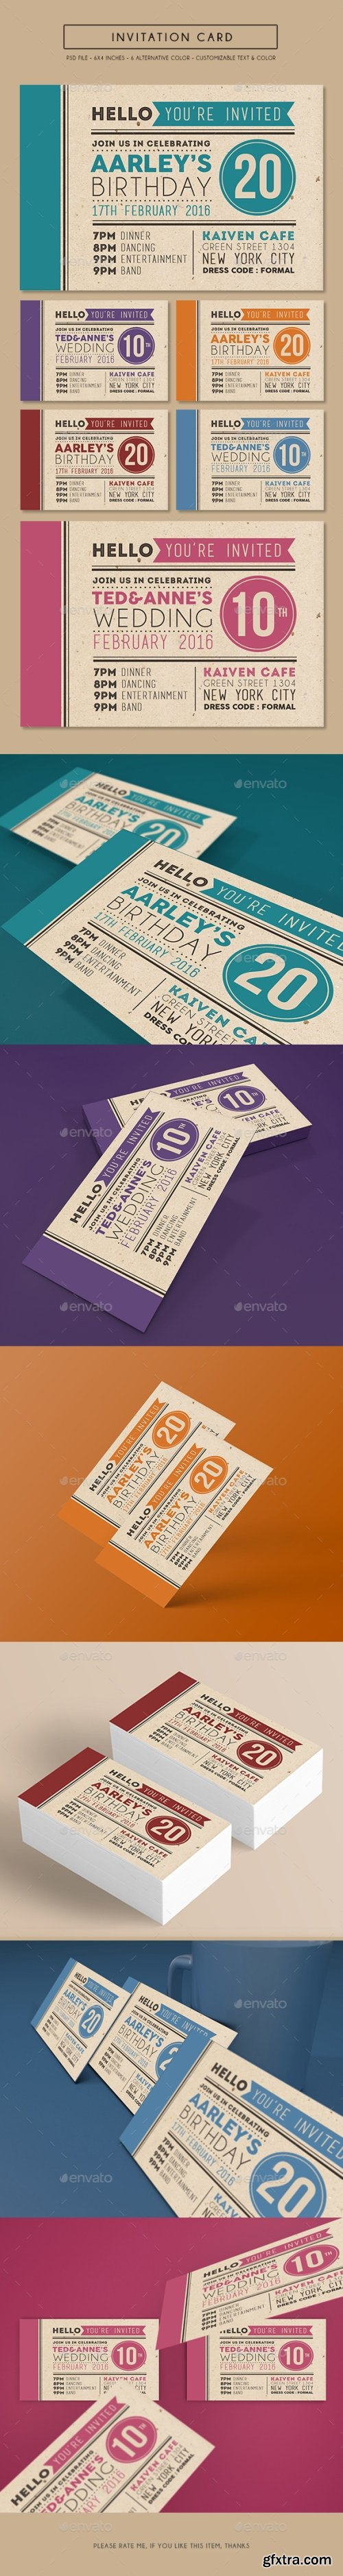 Graphicriver - Colorfull Invitation Card 14926029